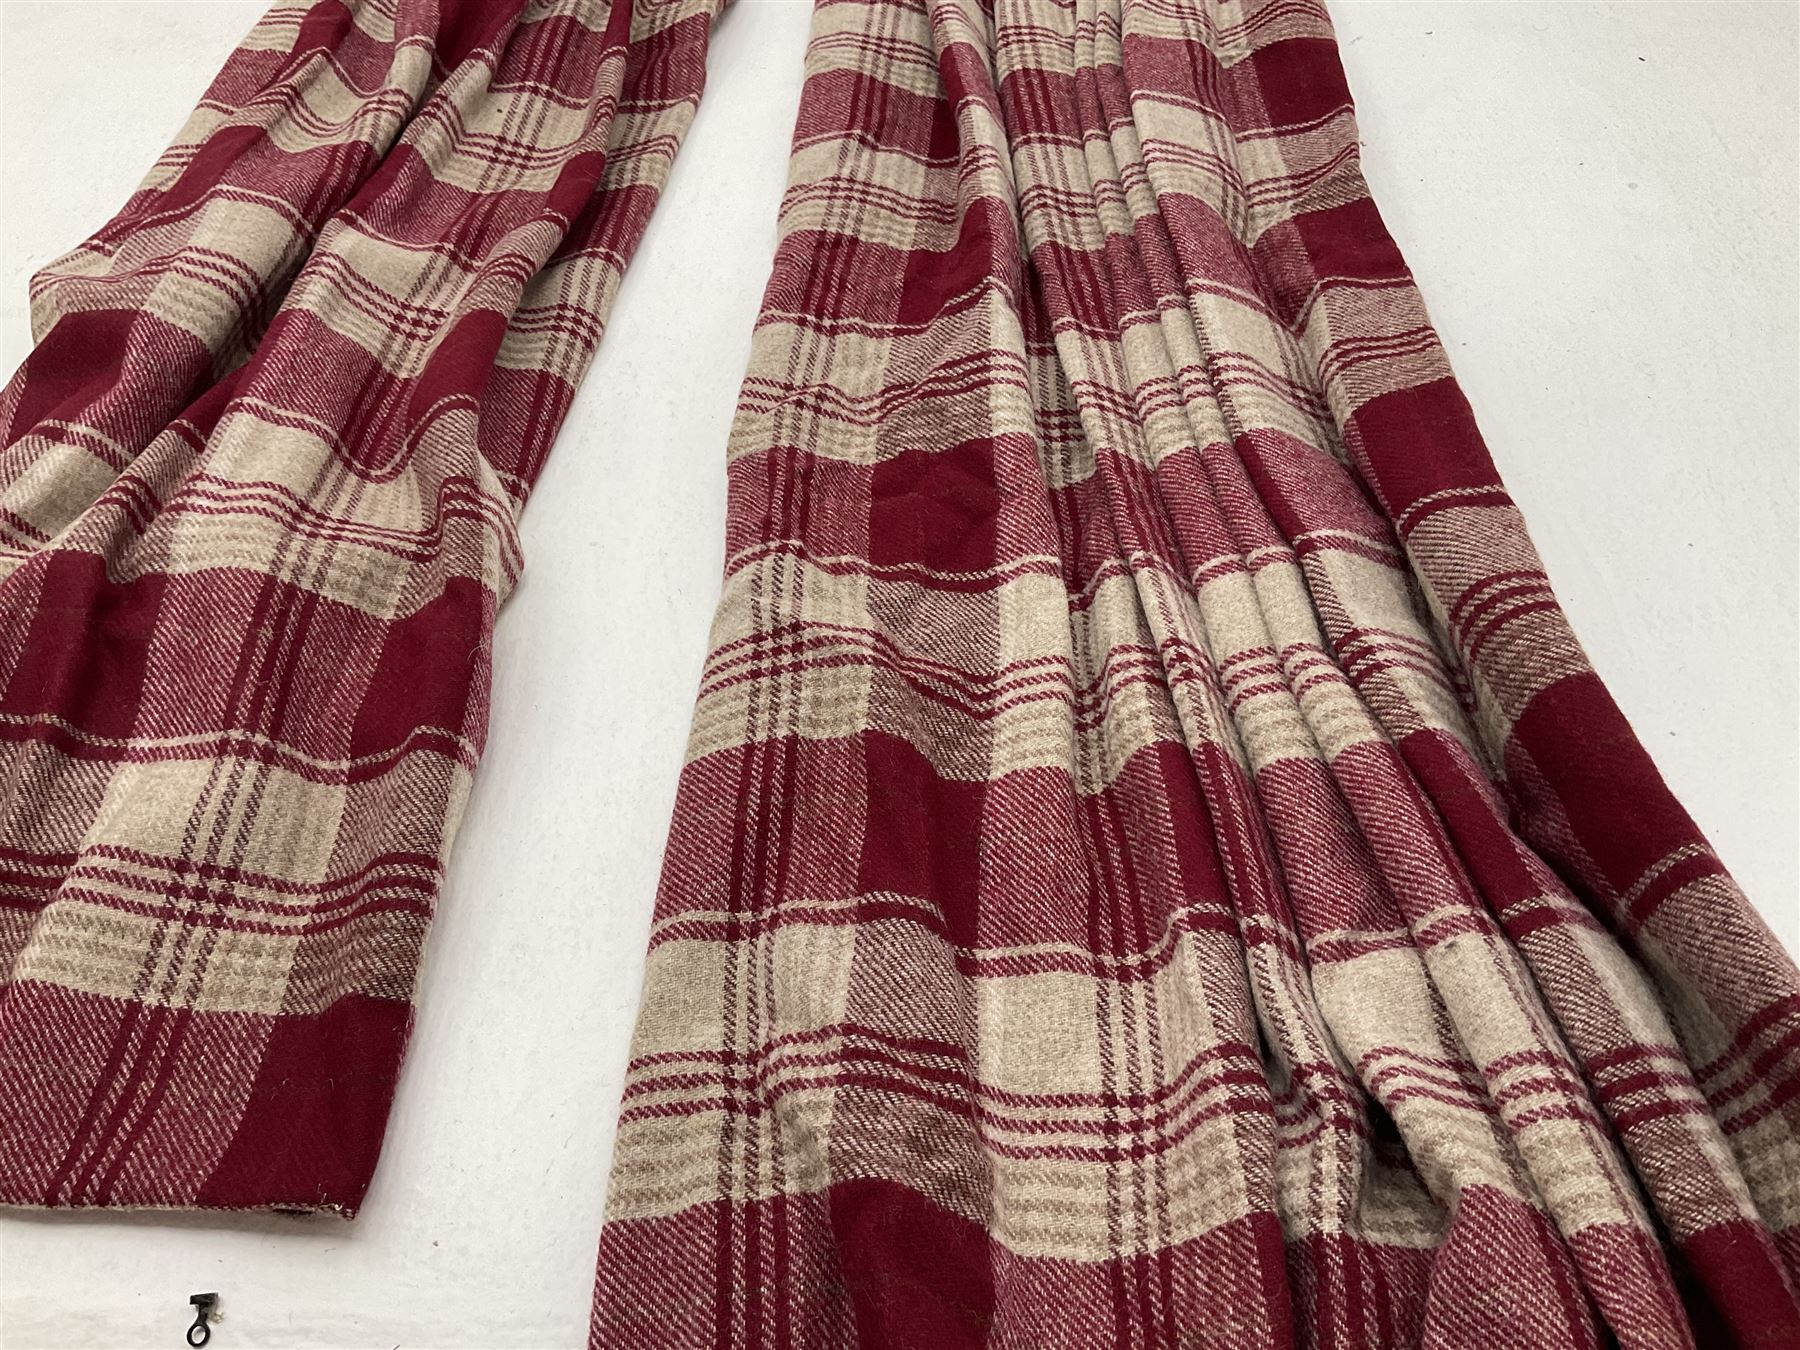 Two pairs of red and beige checkered line curtains along with curtain pole (W130 - Image 2 of 3